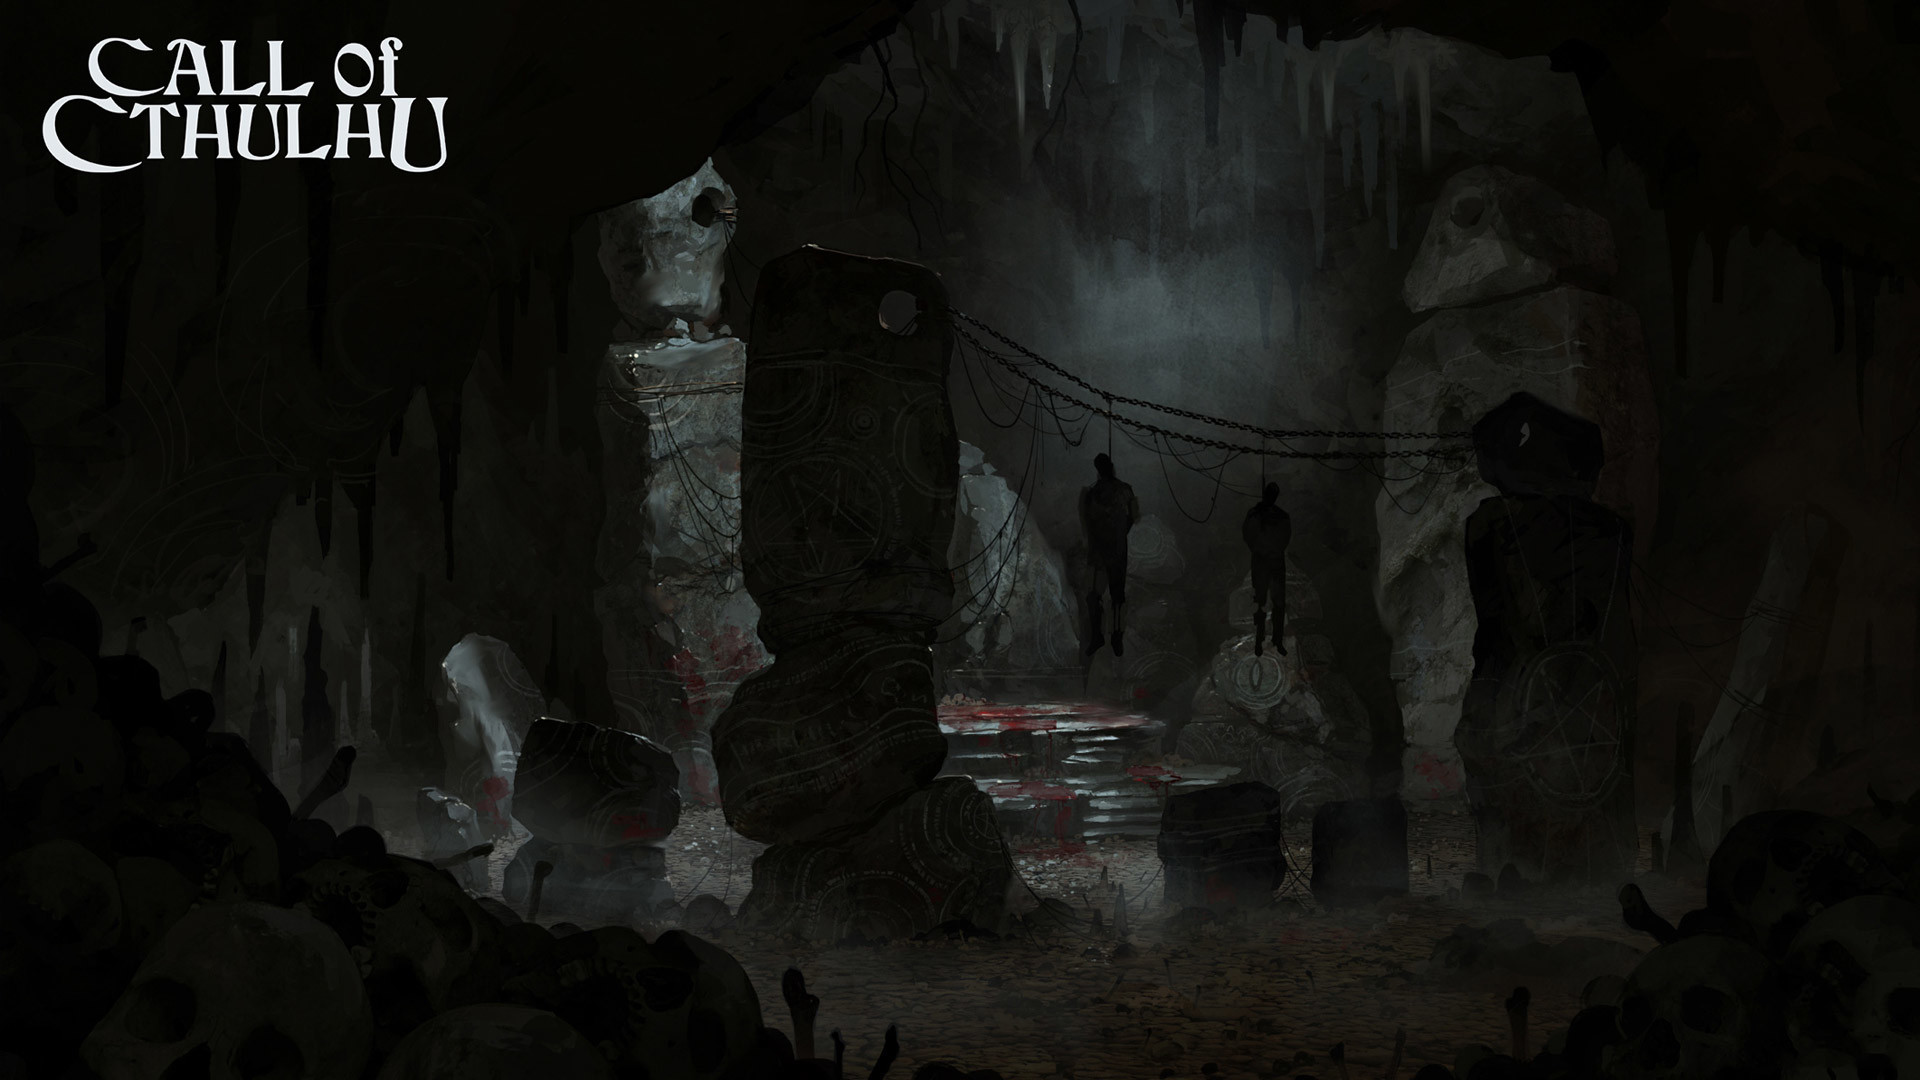 Free Call of Cthulhu Wallpaper in 1920×1080